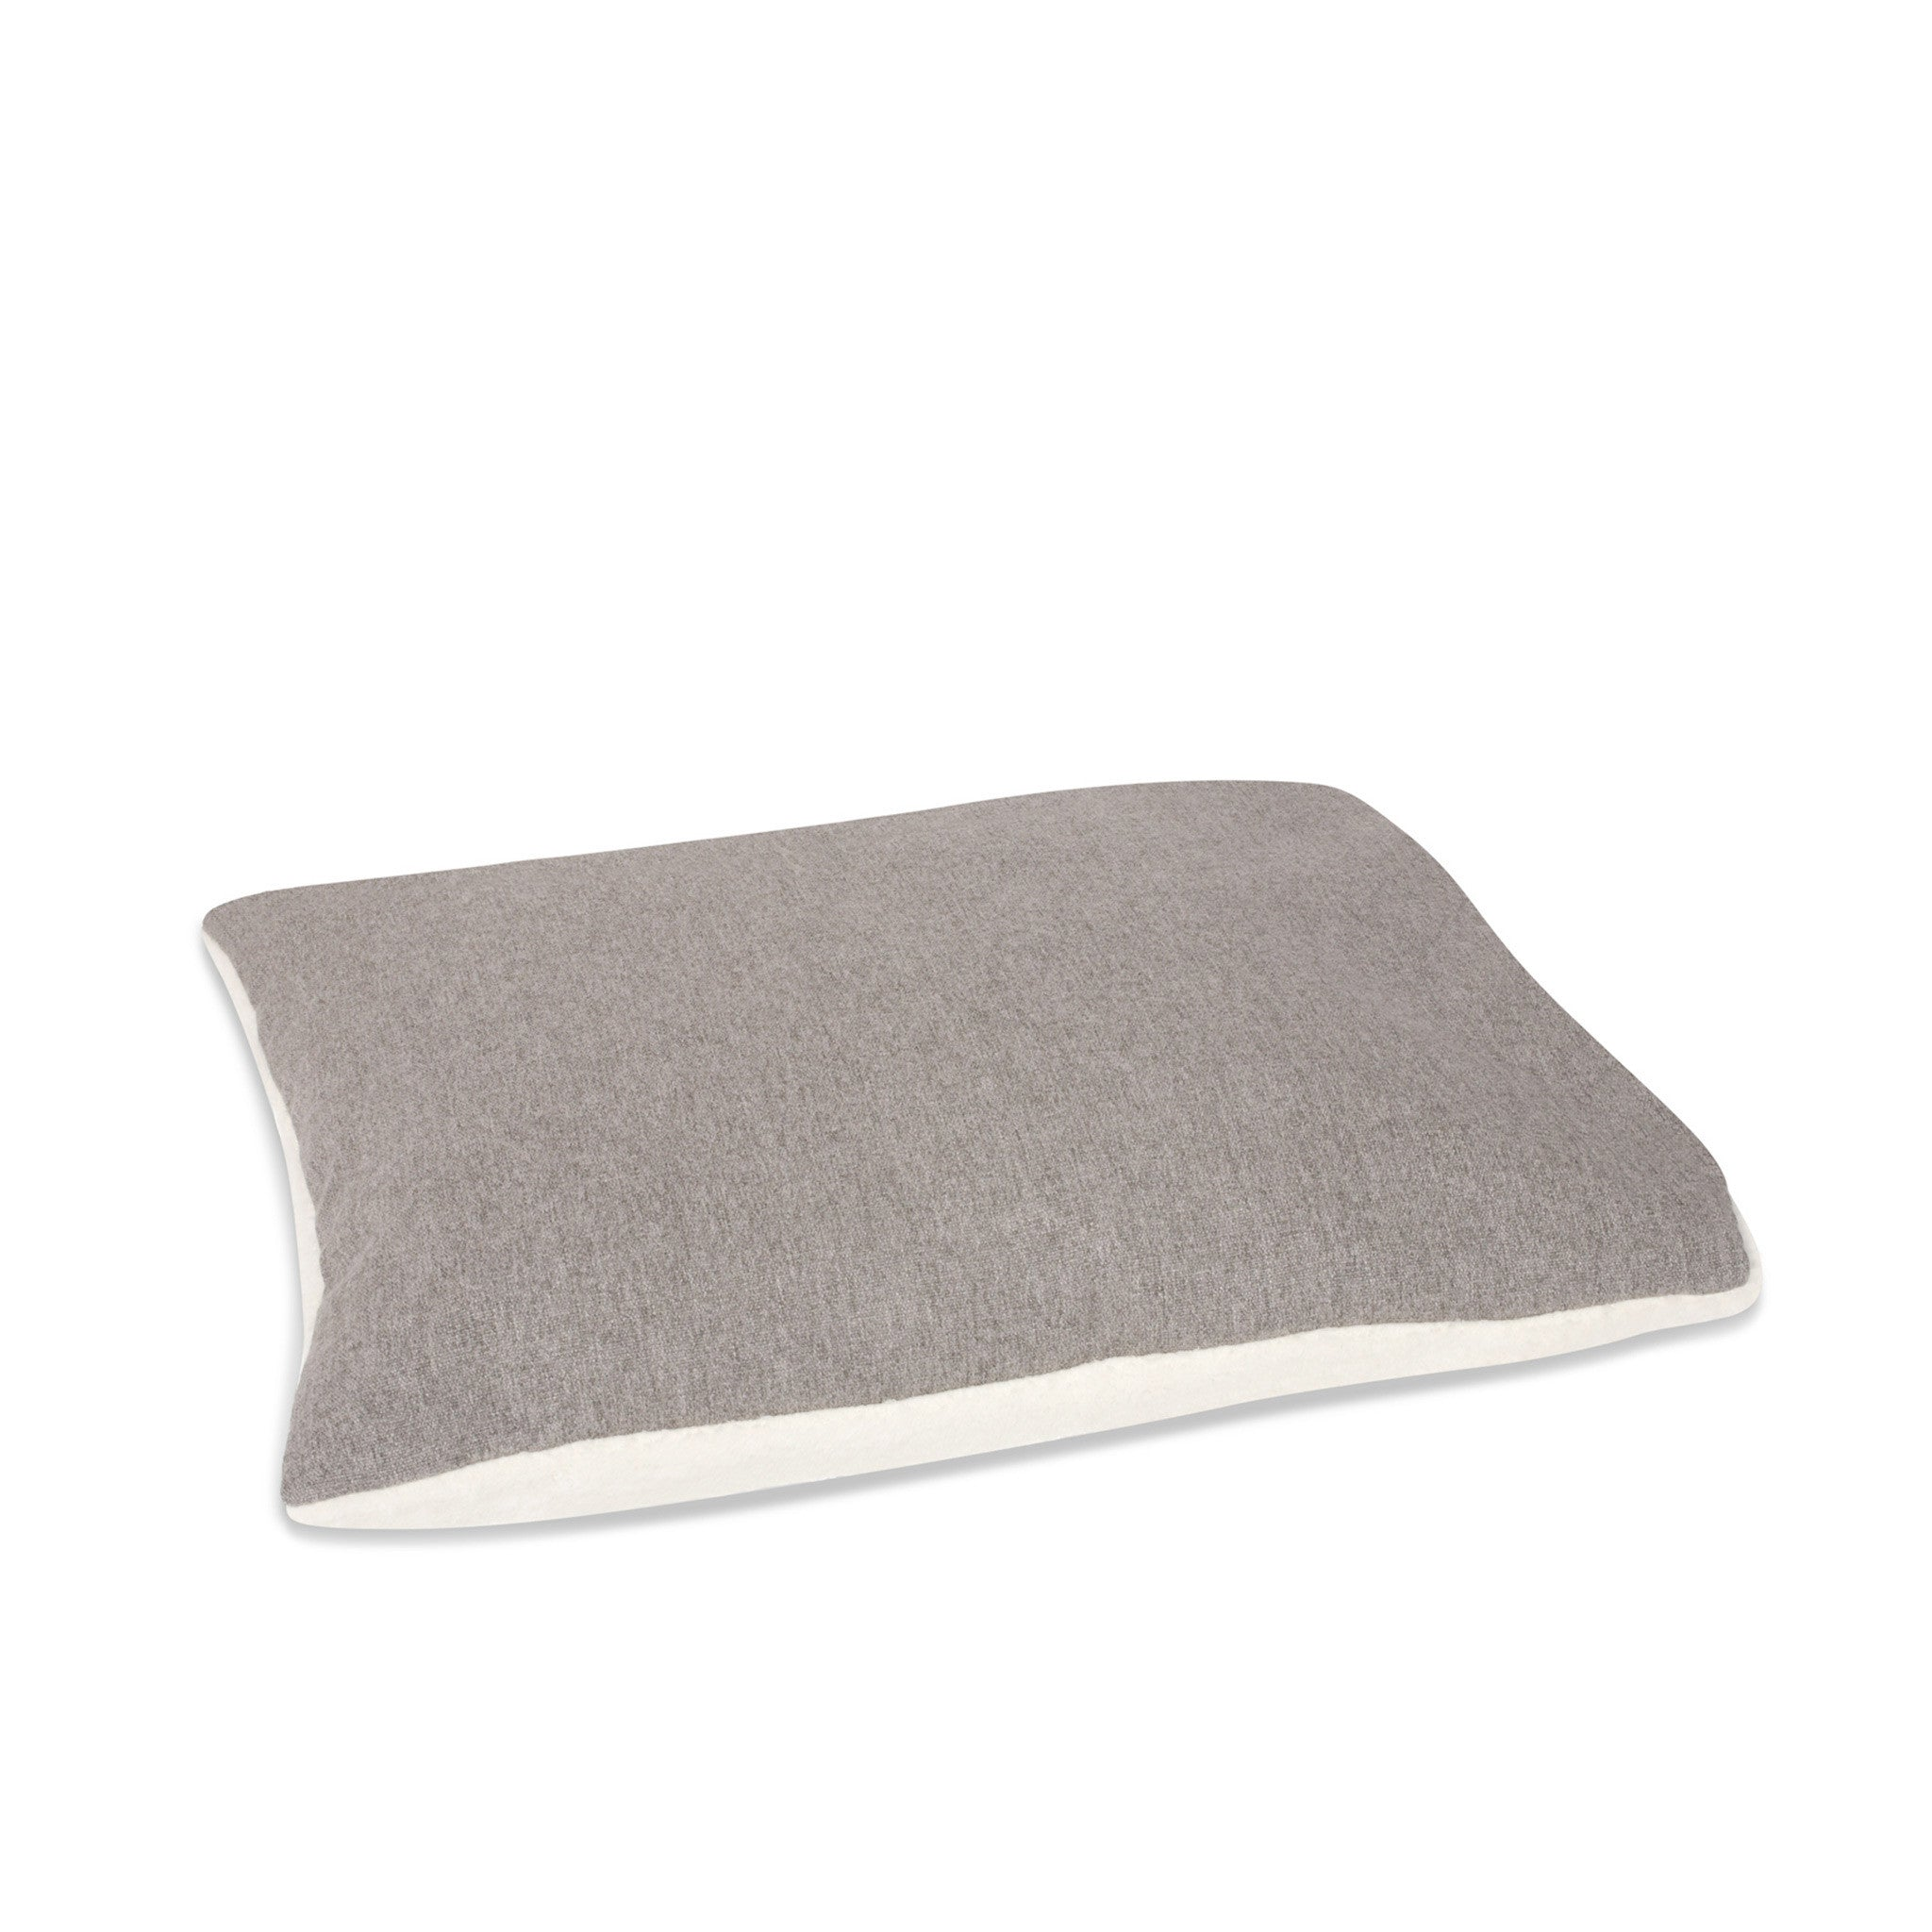 products pad tie sandstone online sun bossima outdoor pillow cabana bed cushion with seating sand beige